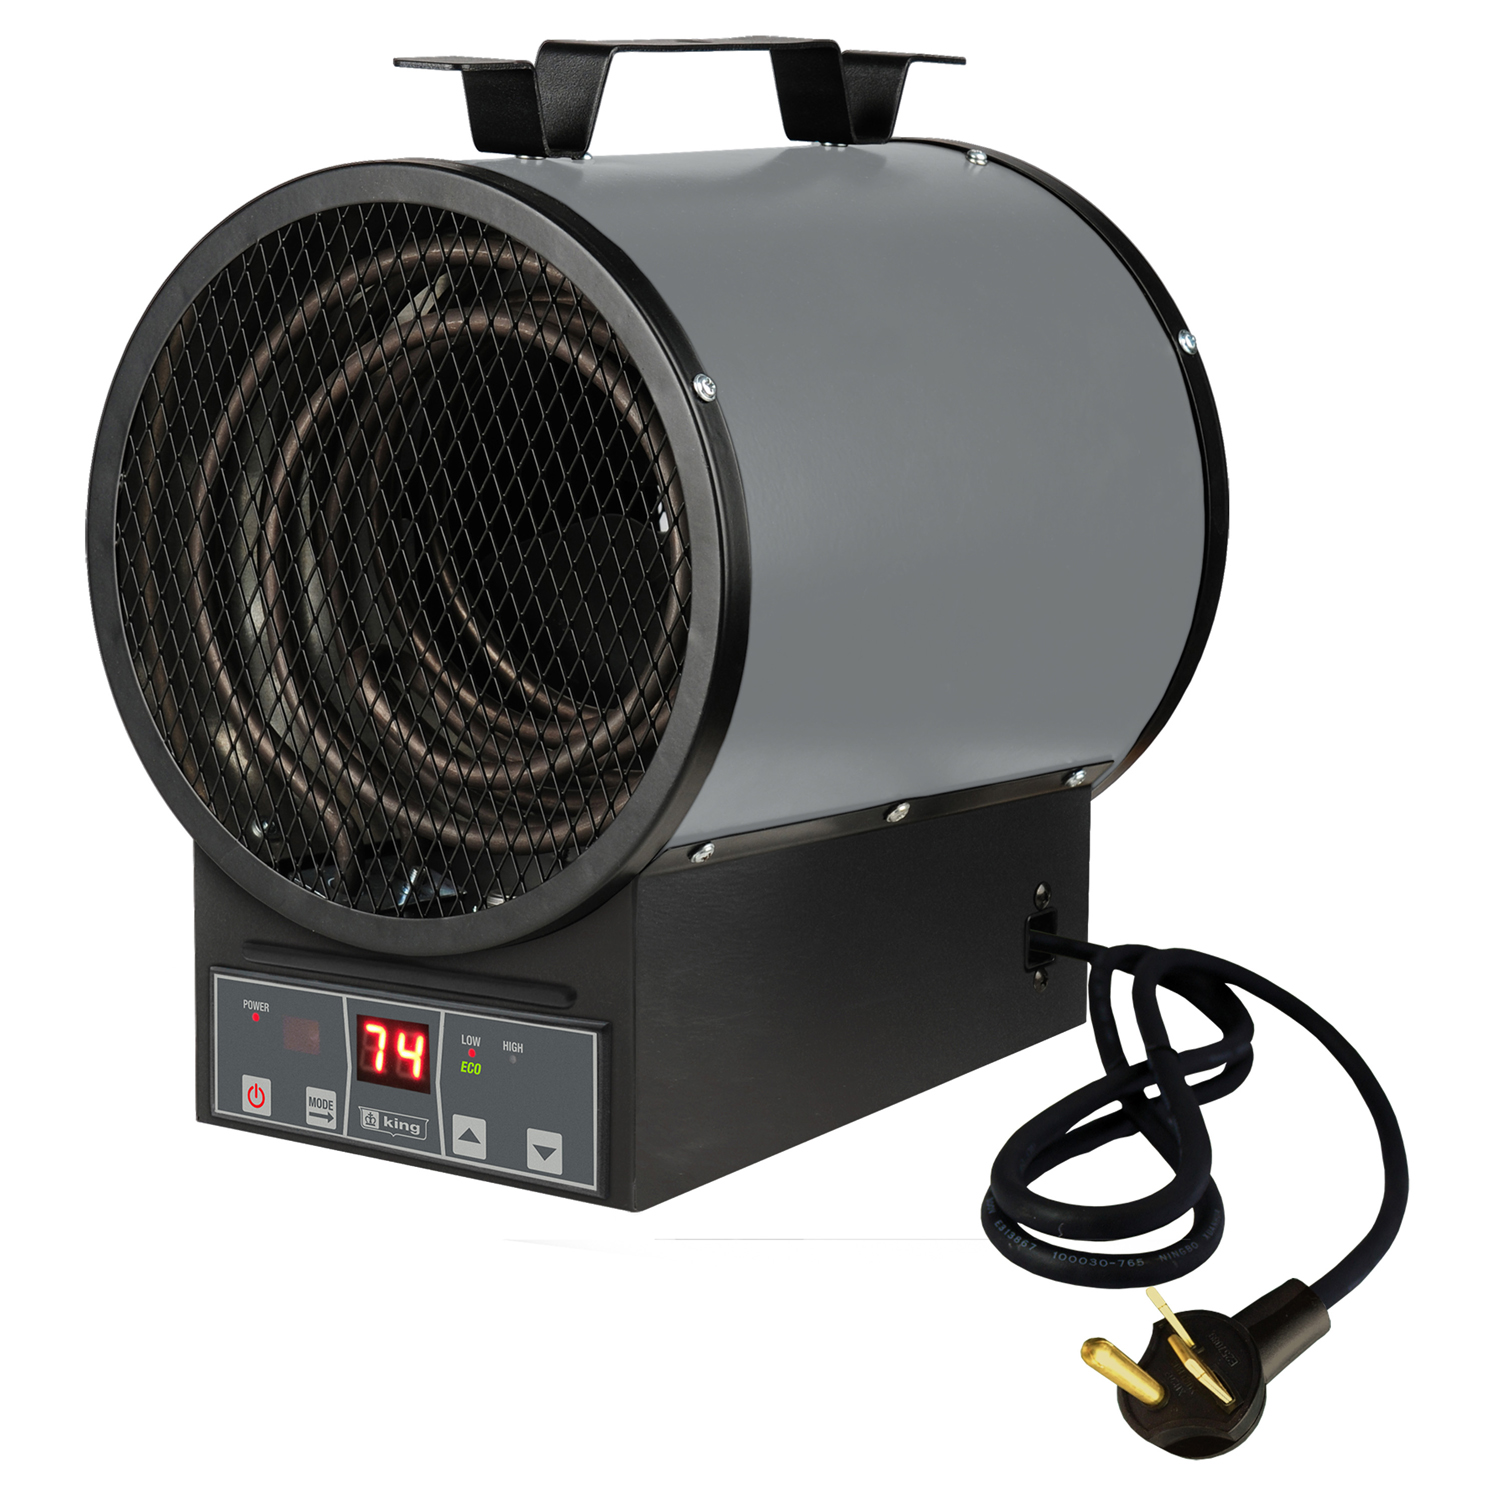 King Electric 240 Volt 4800 Watt Portable Garage Heater With Electronic Control Remote and Bracket, Gray and Black